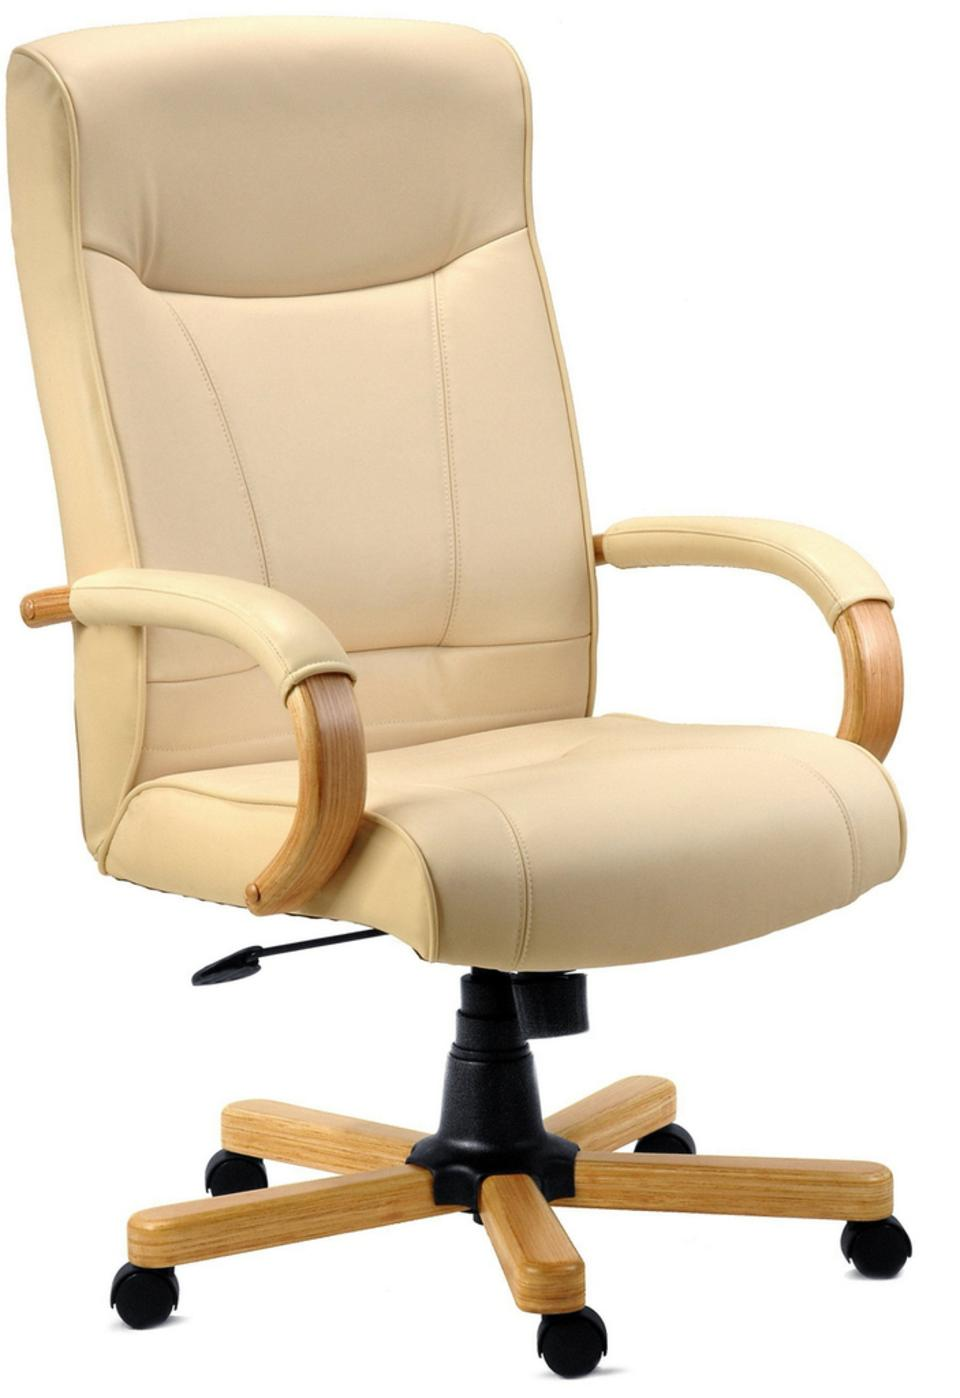 Knightsbridge Leather Executive Chair